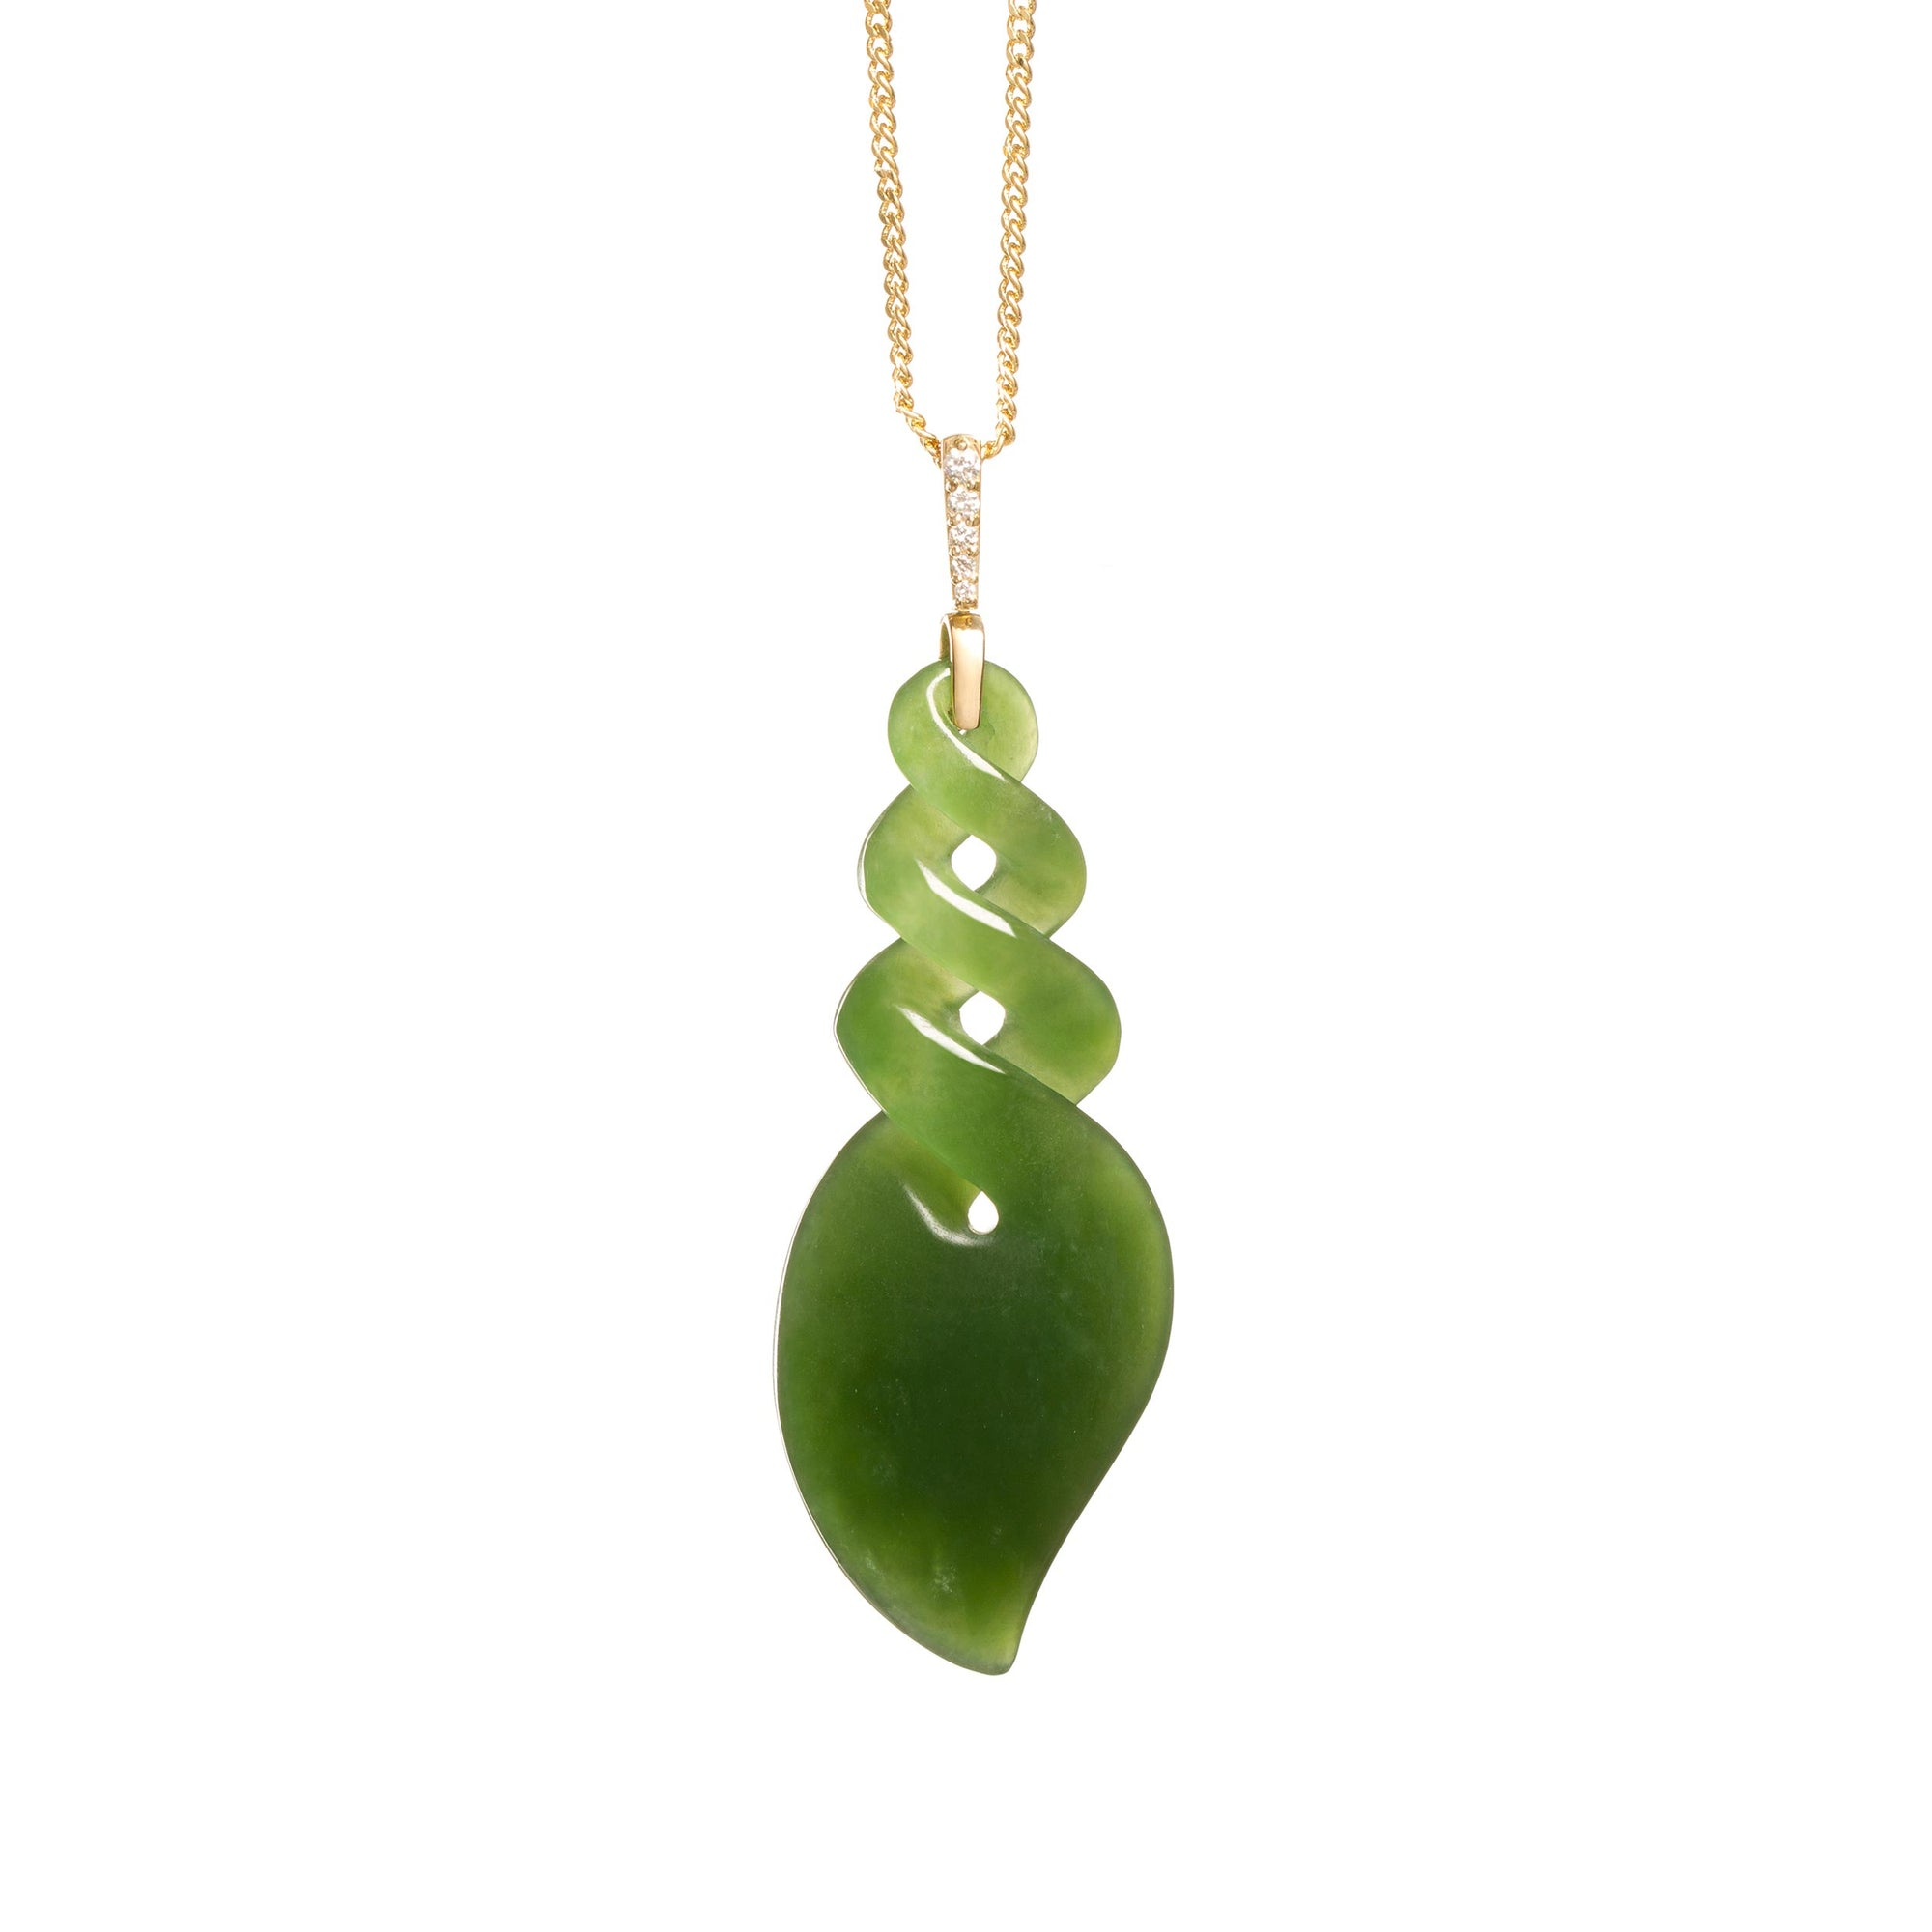 New Zealand Pounamu 18CT Gold & Diamond Twist Necklace